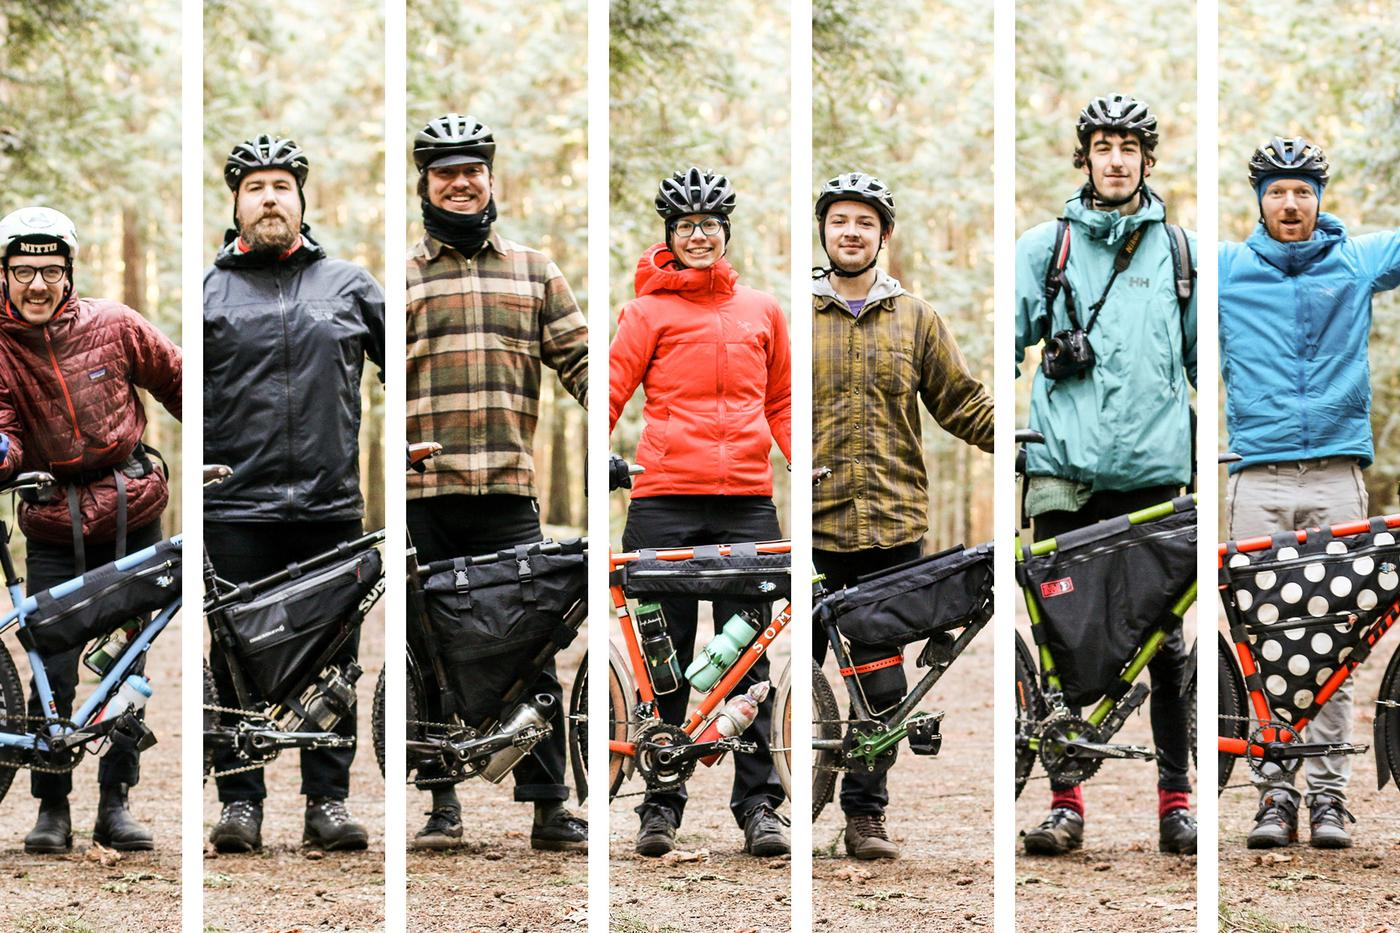 Seven Rider Portraits from a Winter Overnight – Morgan Taylor